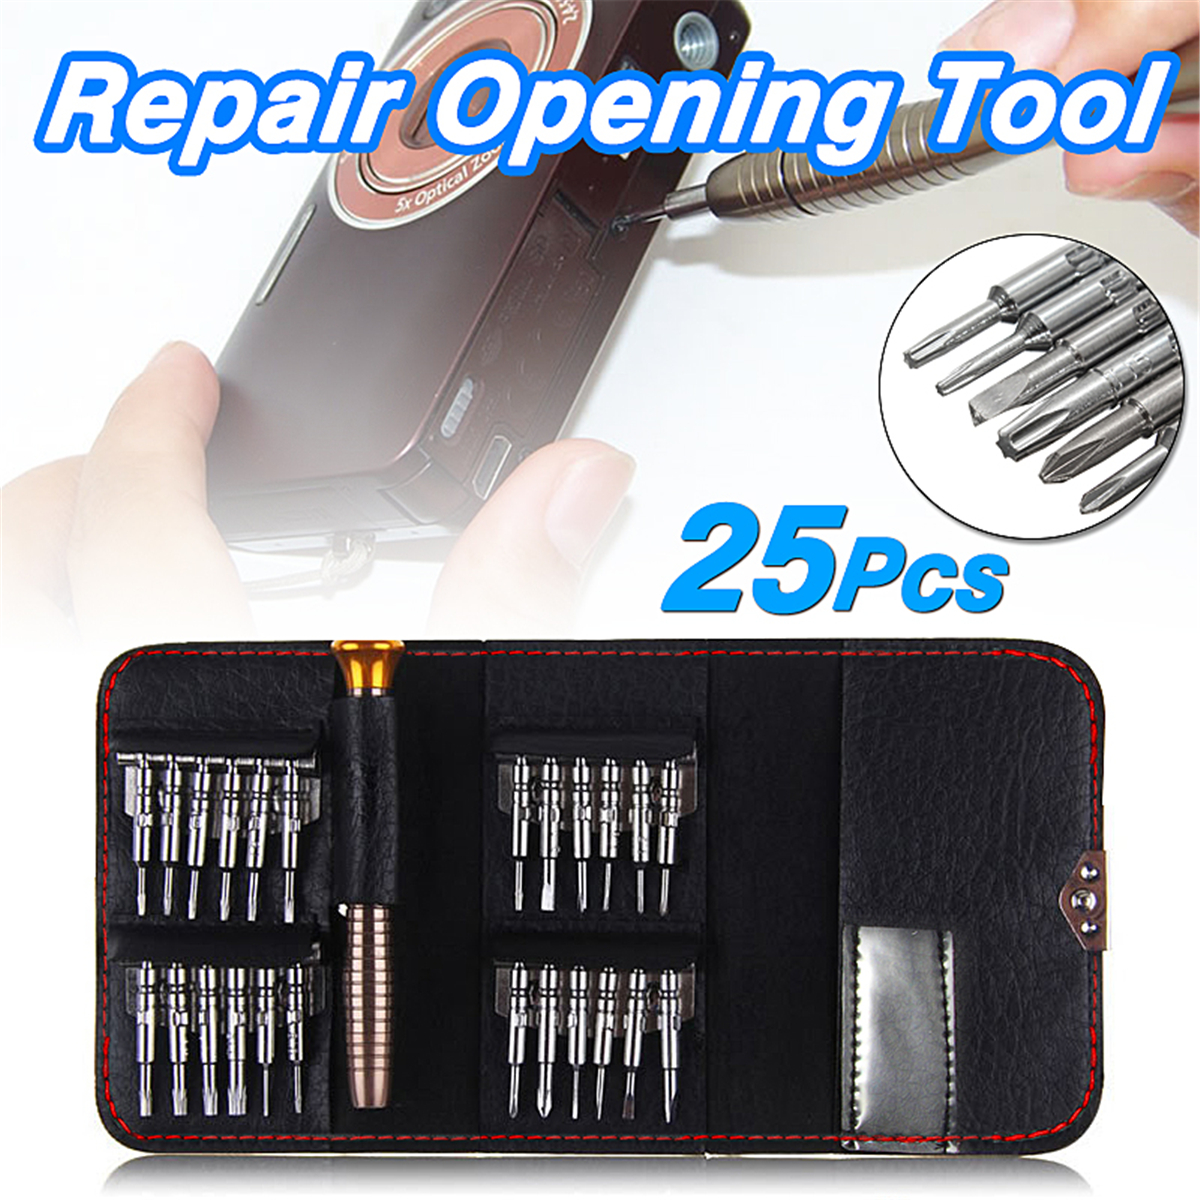 Cell Phone Repair Tools Set 25 In 1 Precision Torx Screwdriver For Obeng Jakemy Jm 8101 33 Tool Kit Drillpro Wallet Iphone Cellphone Electronics